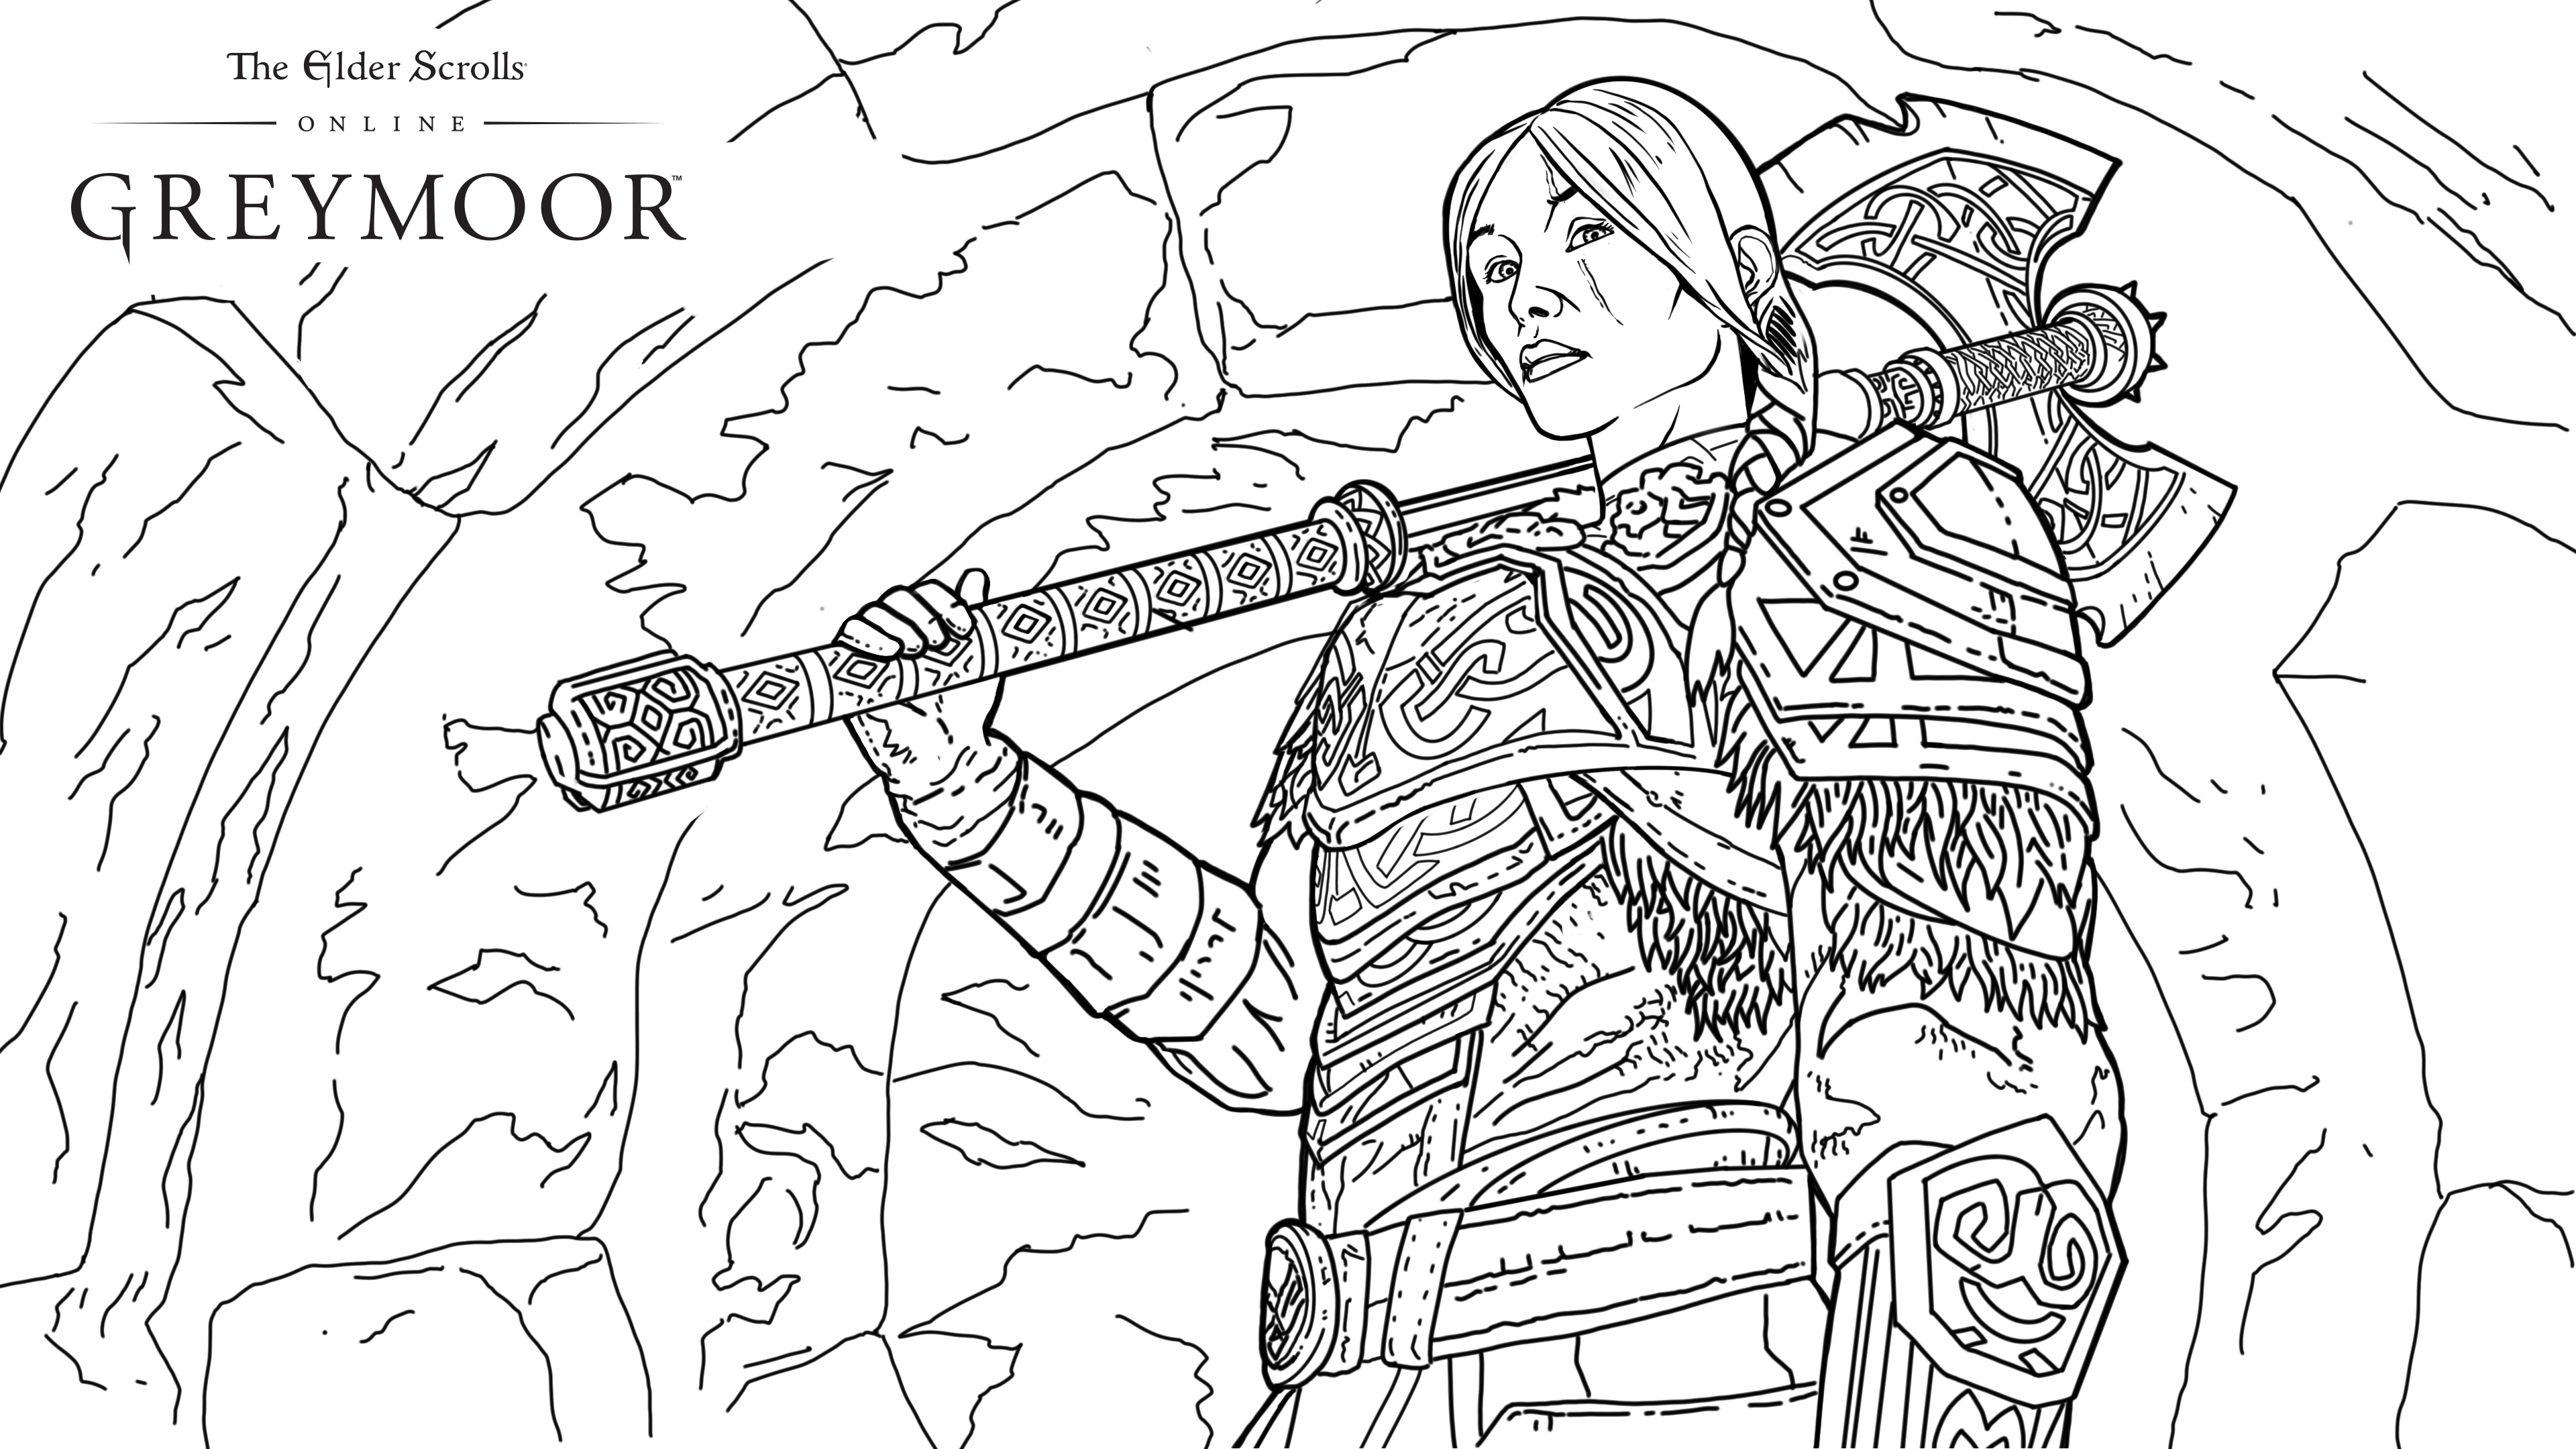 Get Creative at Home with these Greymoor Coloring Pages